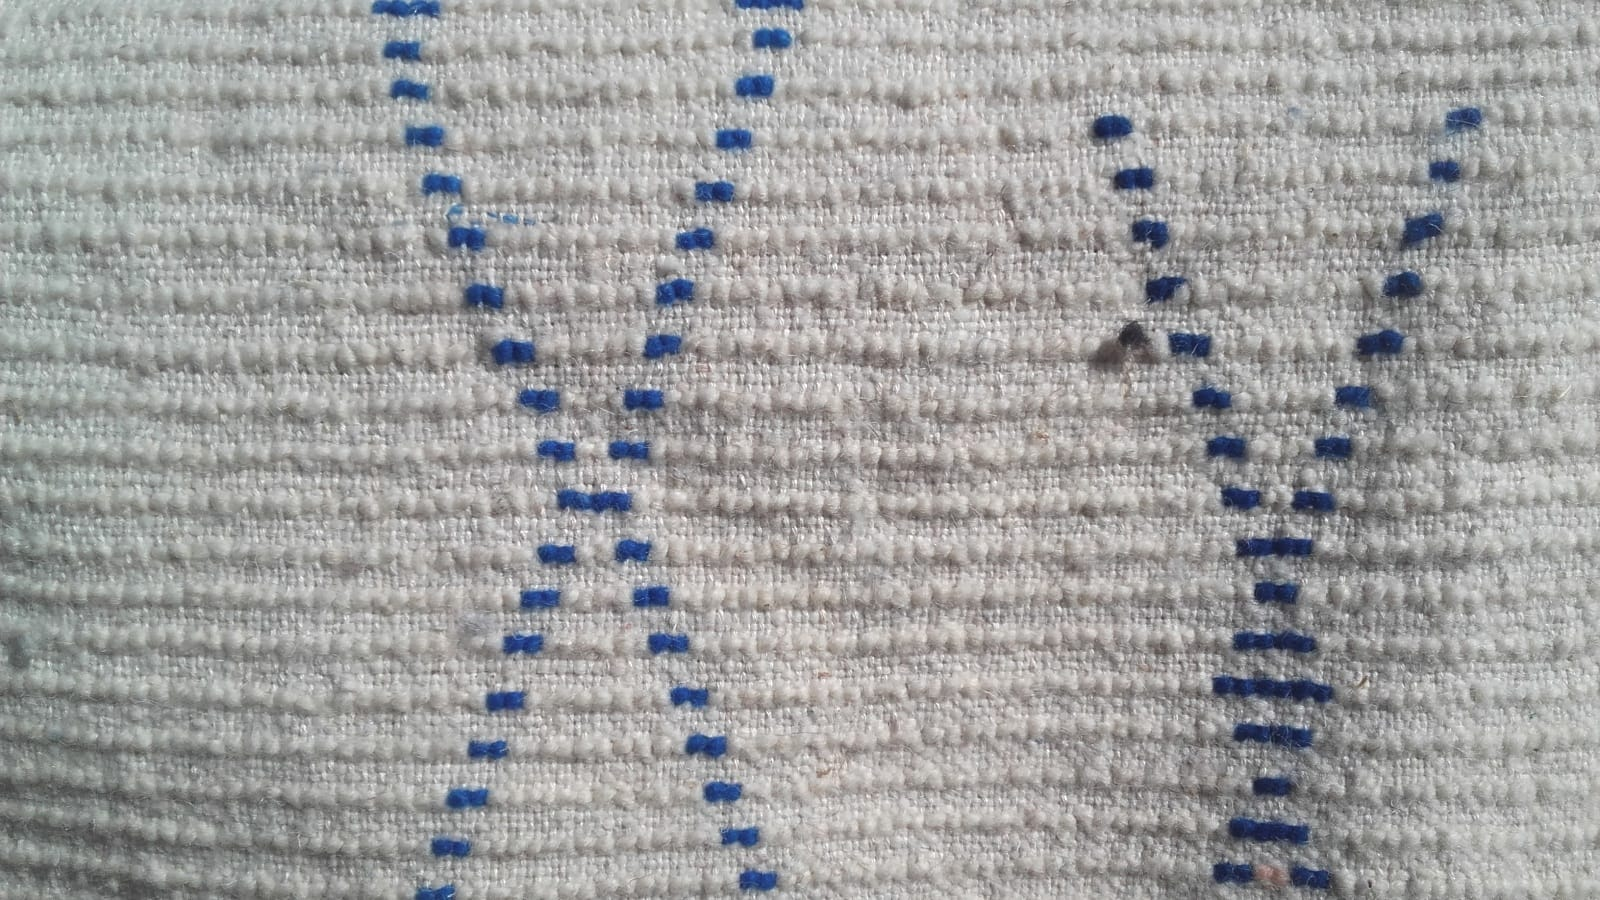 Pile Knot Rug Wool Pink, Blue Morocco